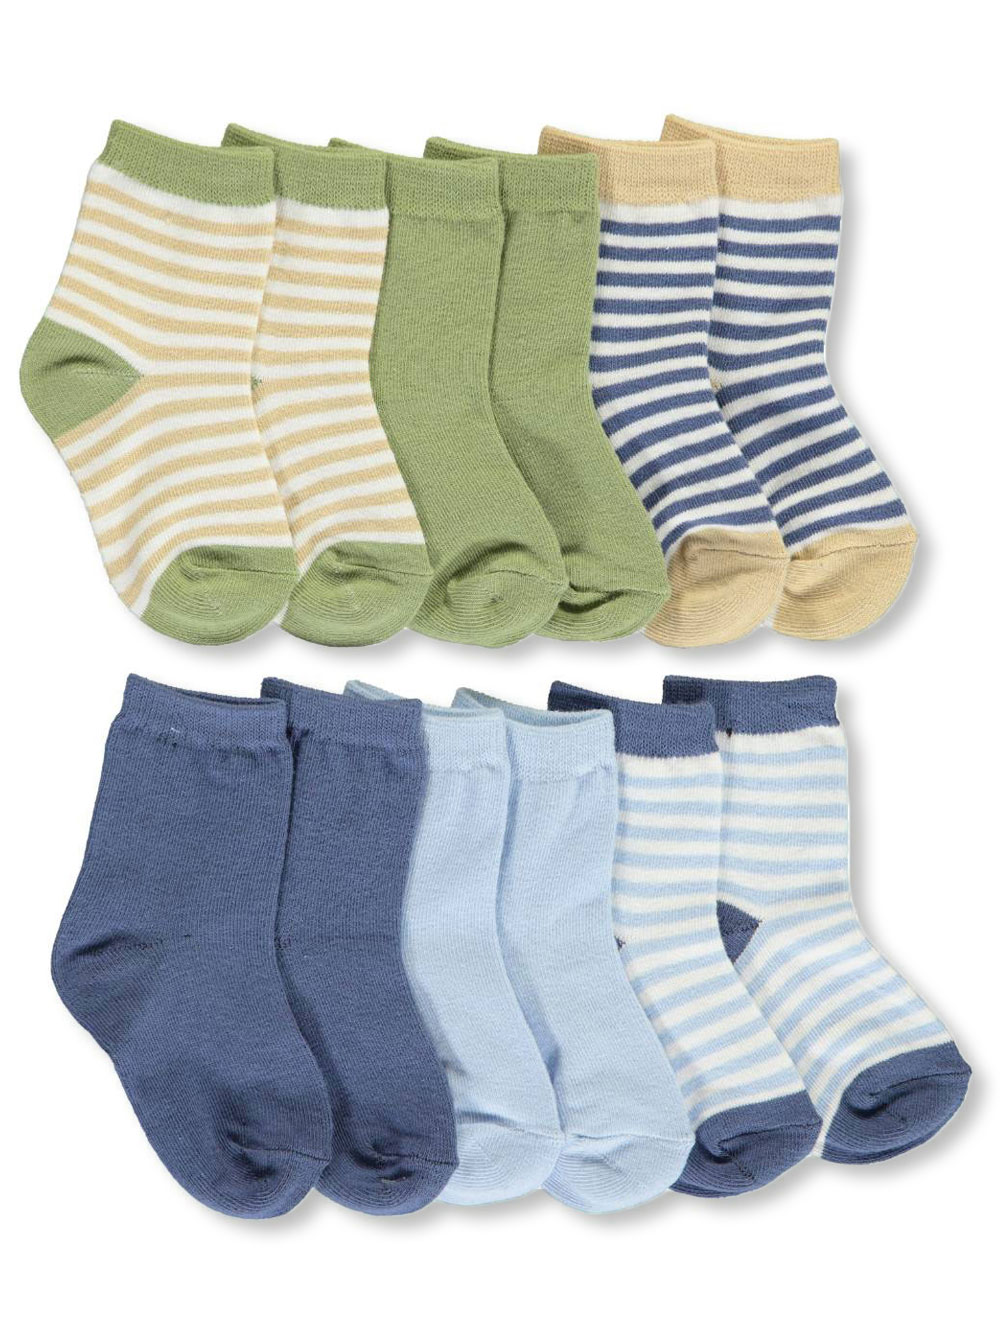 Blue and Multicolor Socks